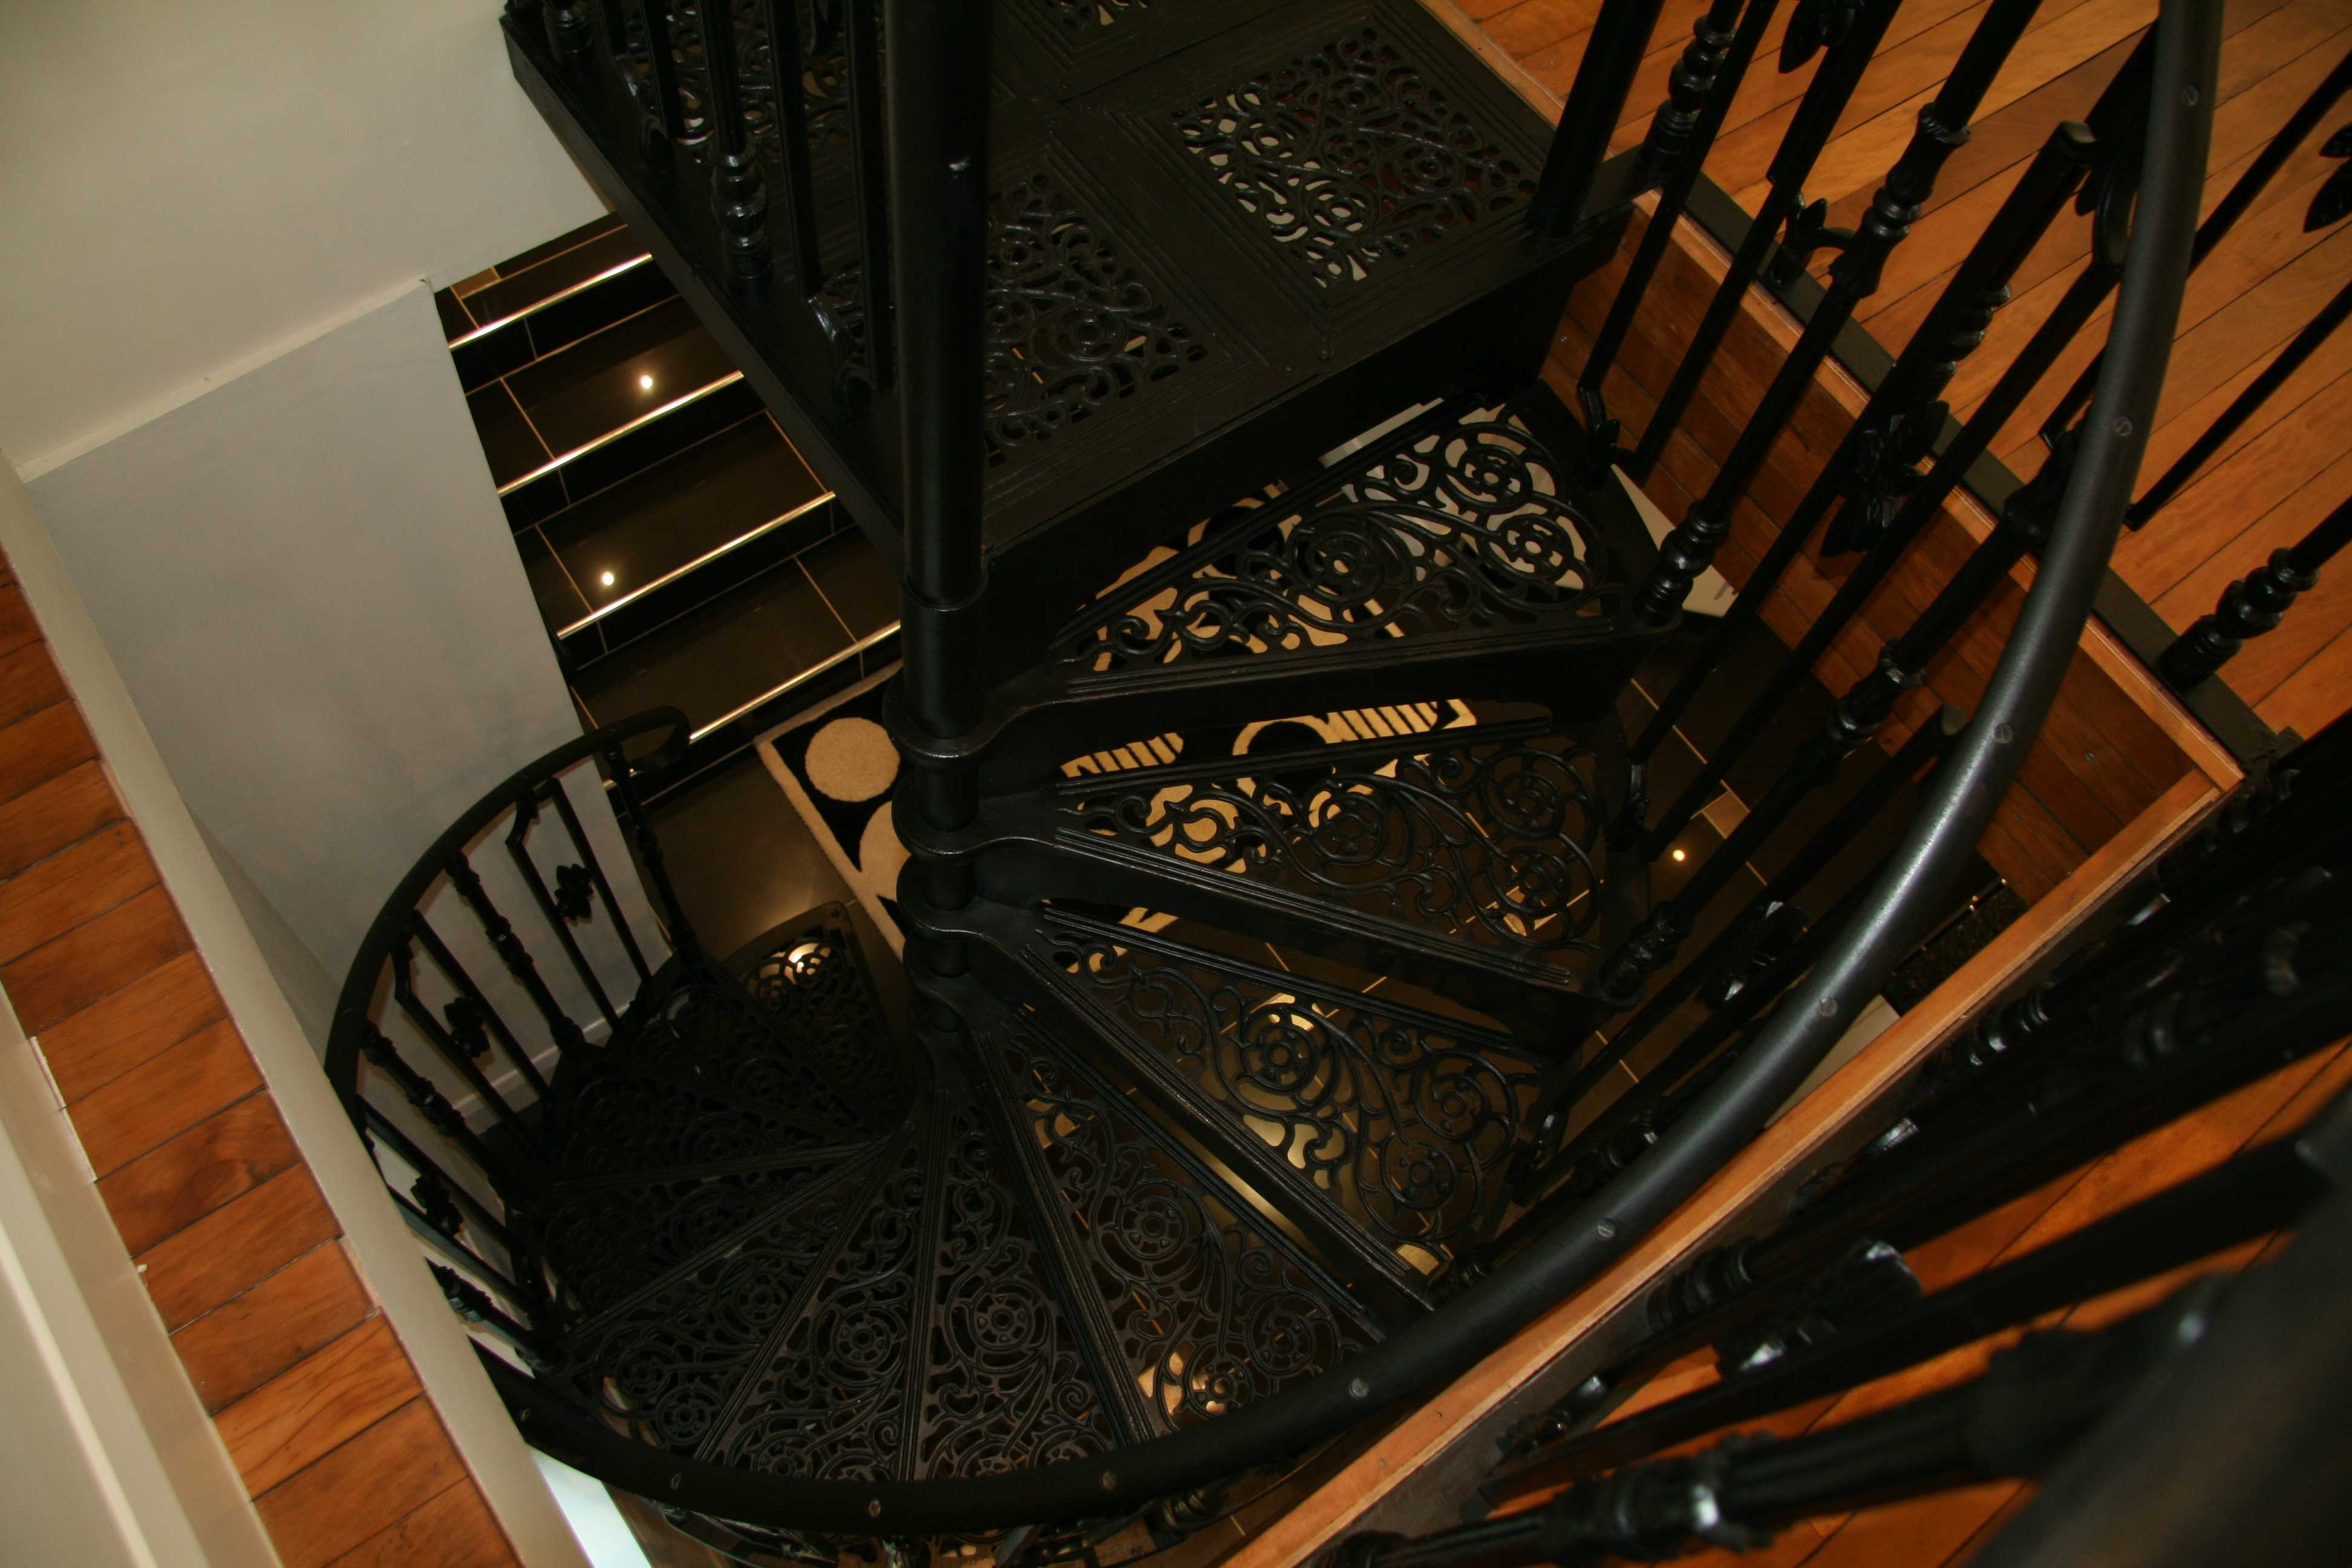 Black modern metal wrought iron round stair railings interior for sale–IOK-176